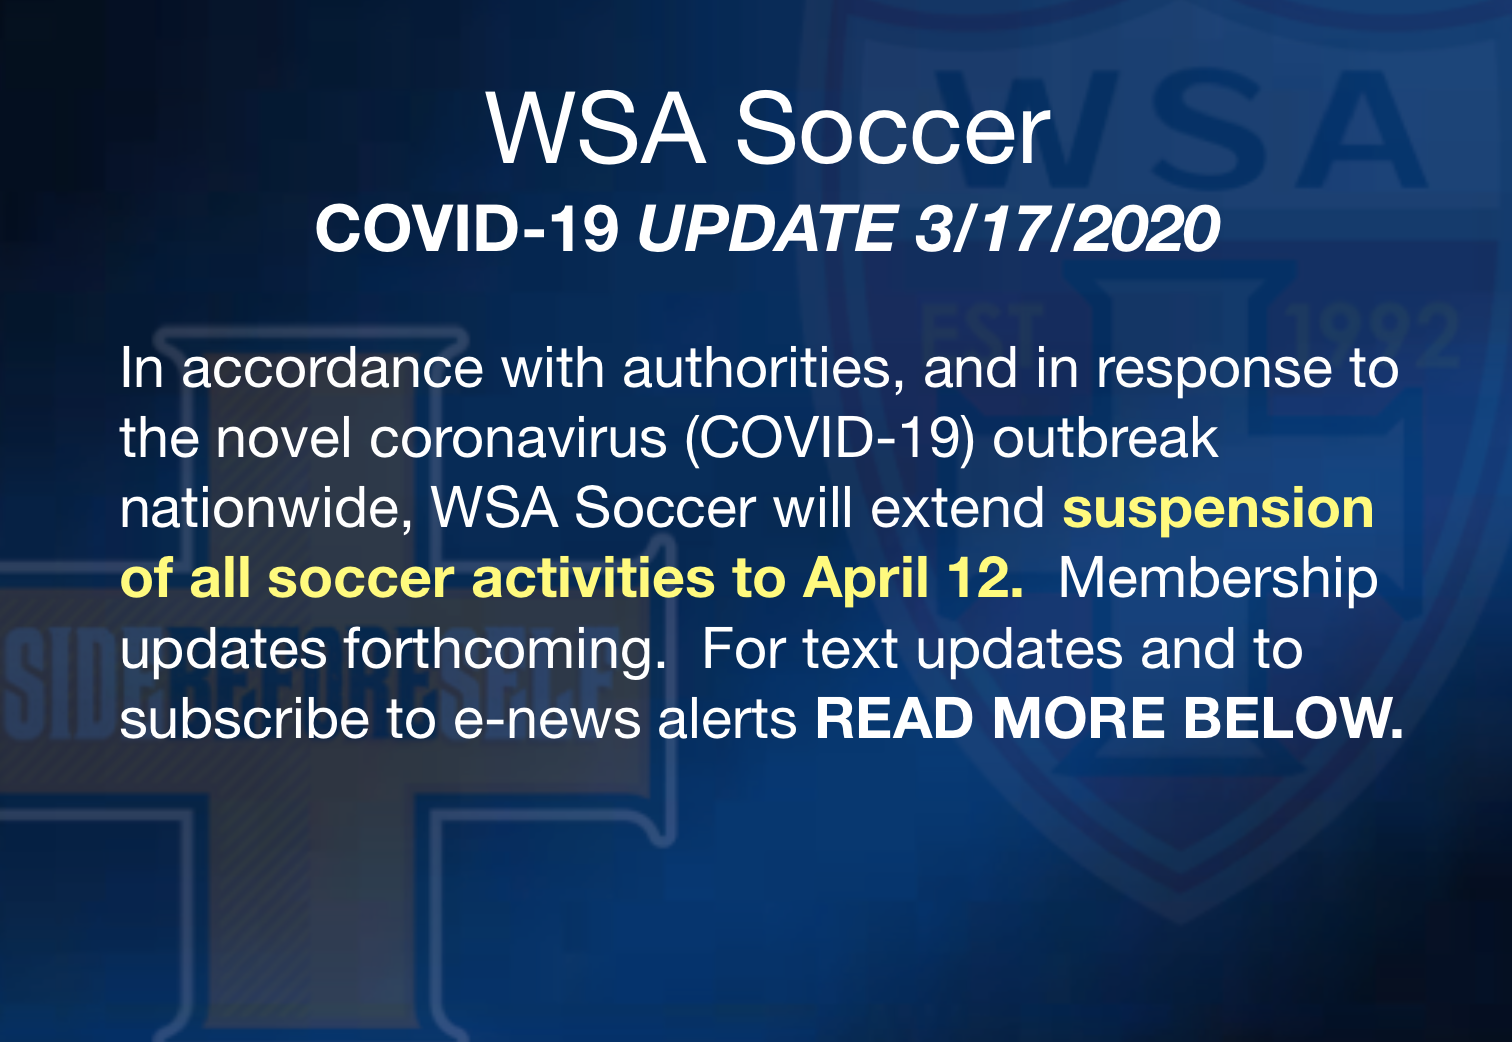 COVID-19 UPDATE - CLUB EXTENDS SUSPENSION OF PLAY THRU APRIL 30